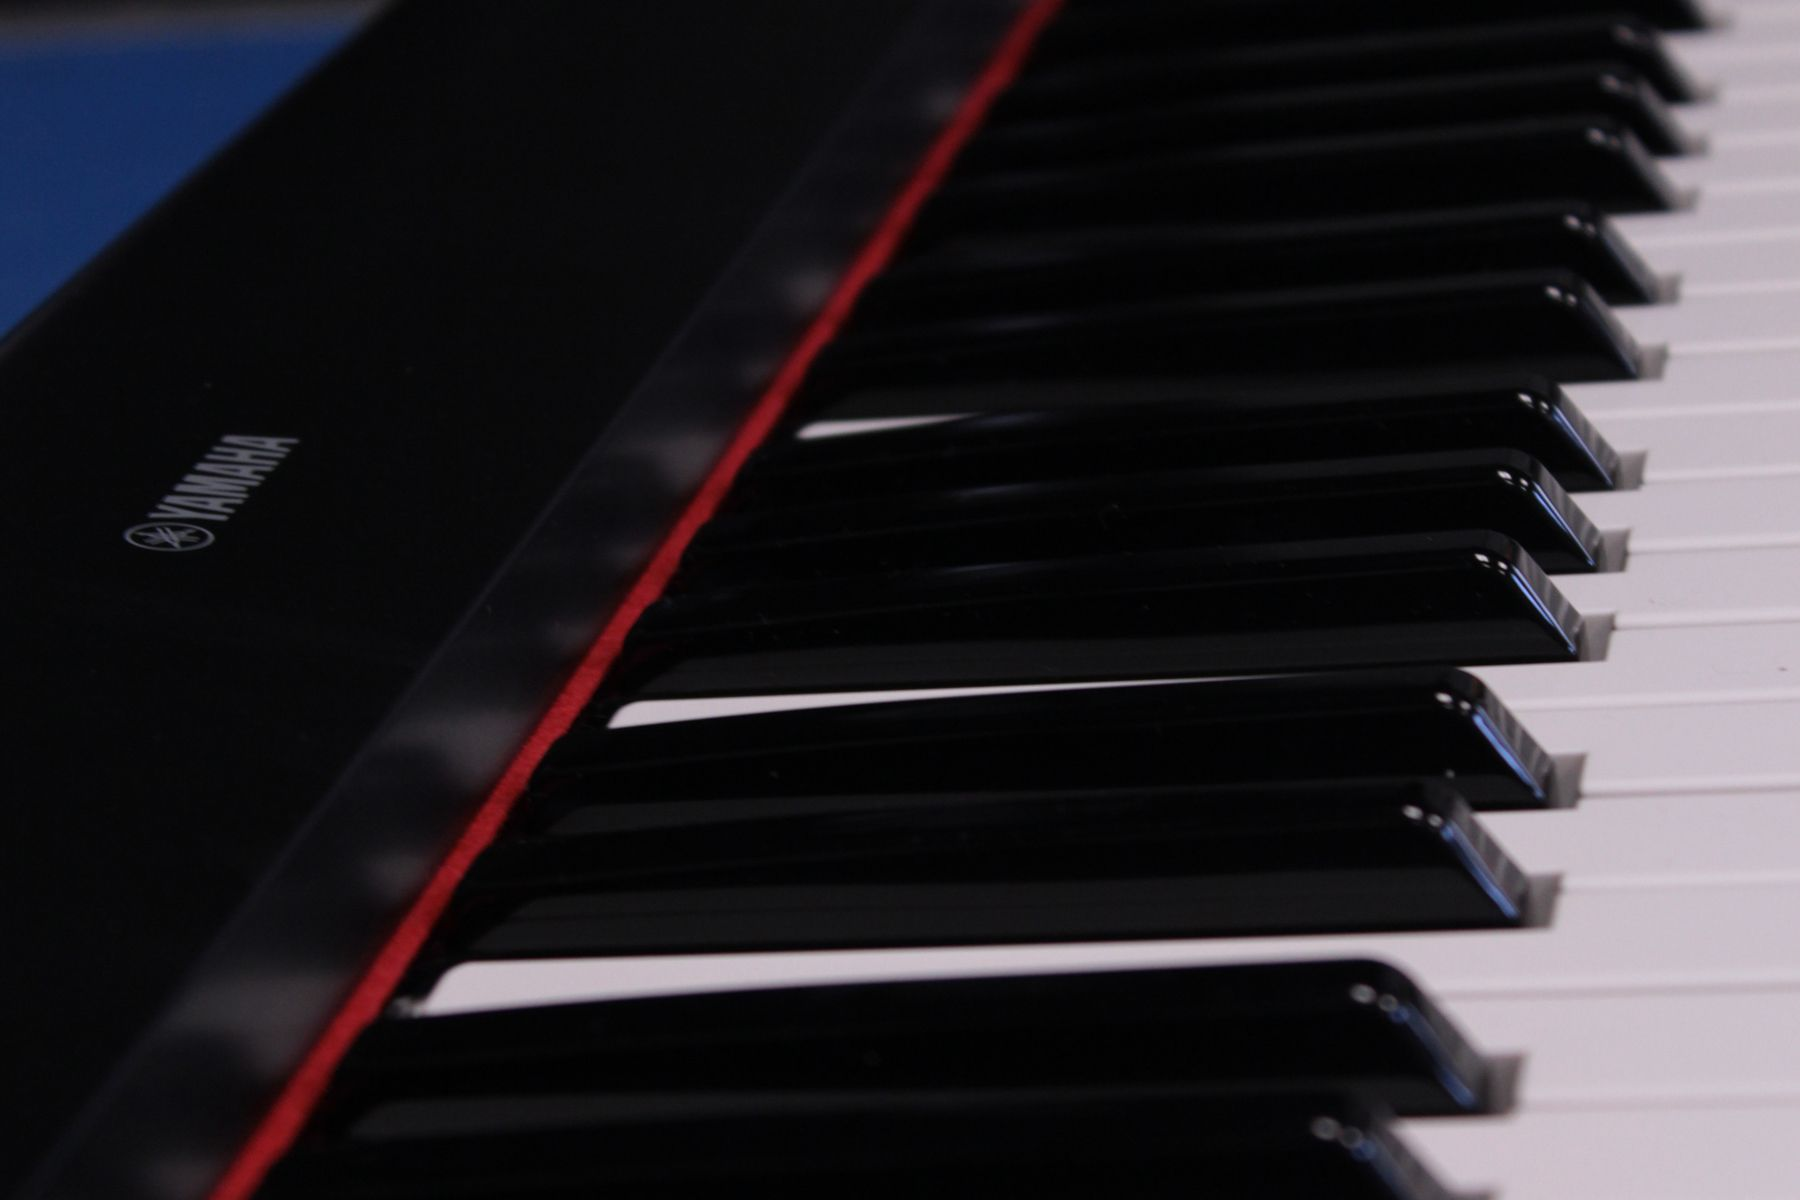 Close up of keys on a Yamaha keyboard